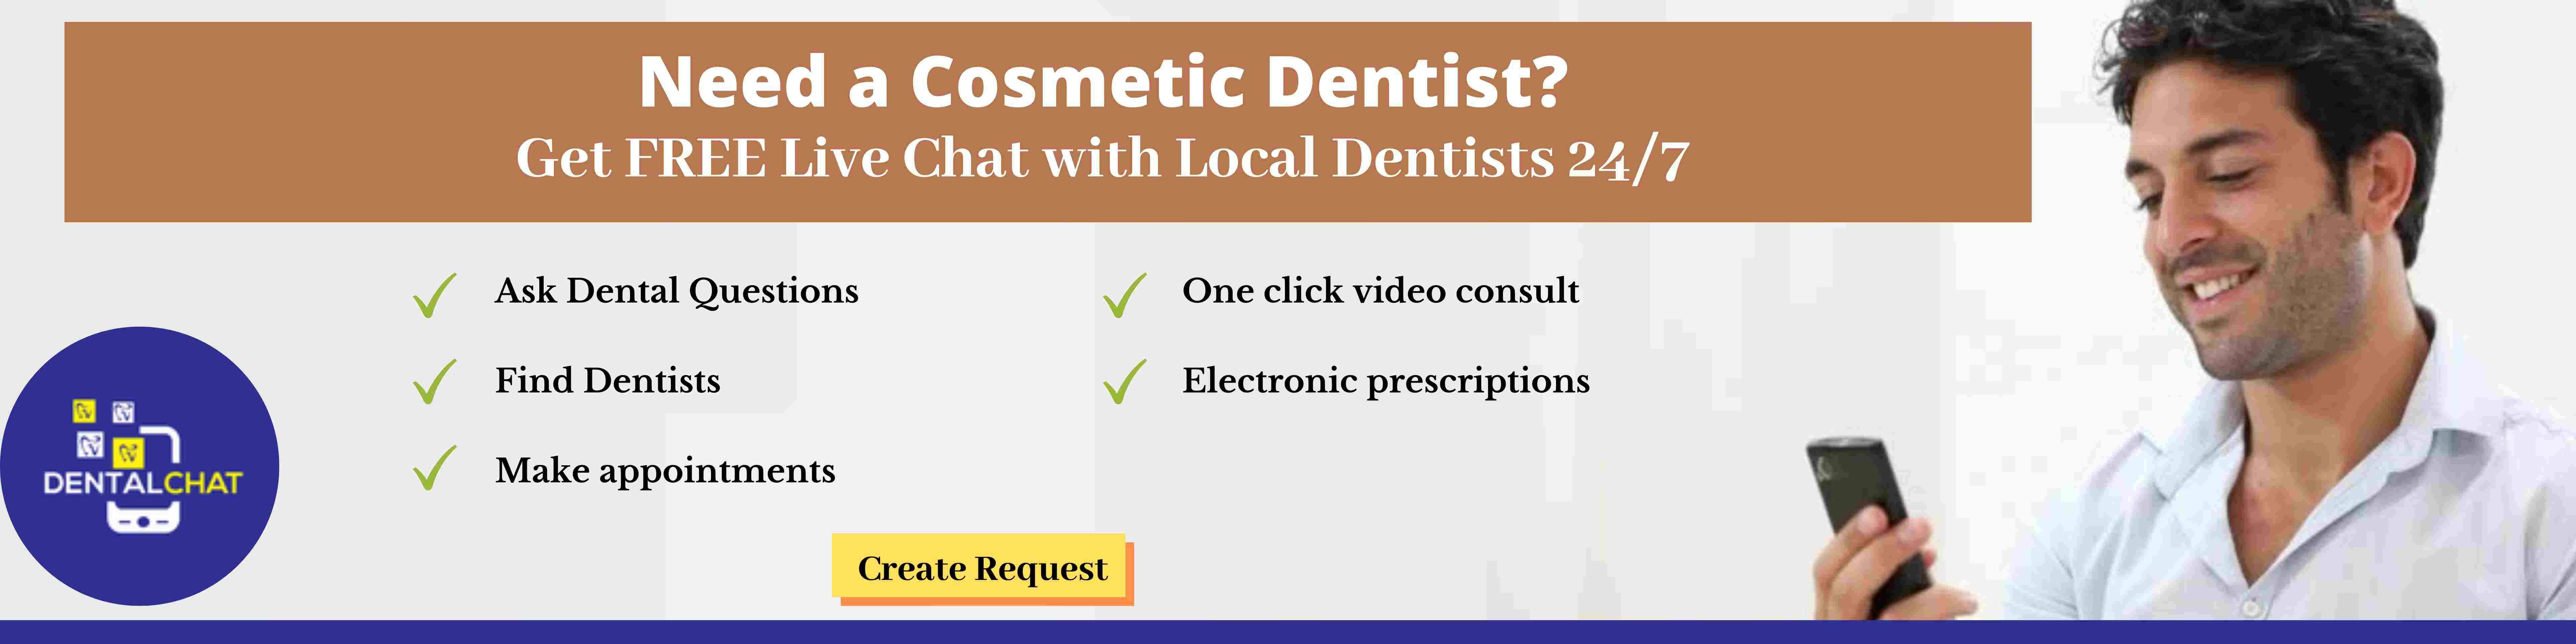 Local cosmetic dentistry teledentistry question consultation ask dentists virtually